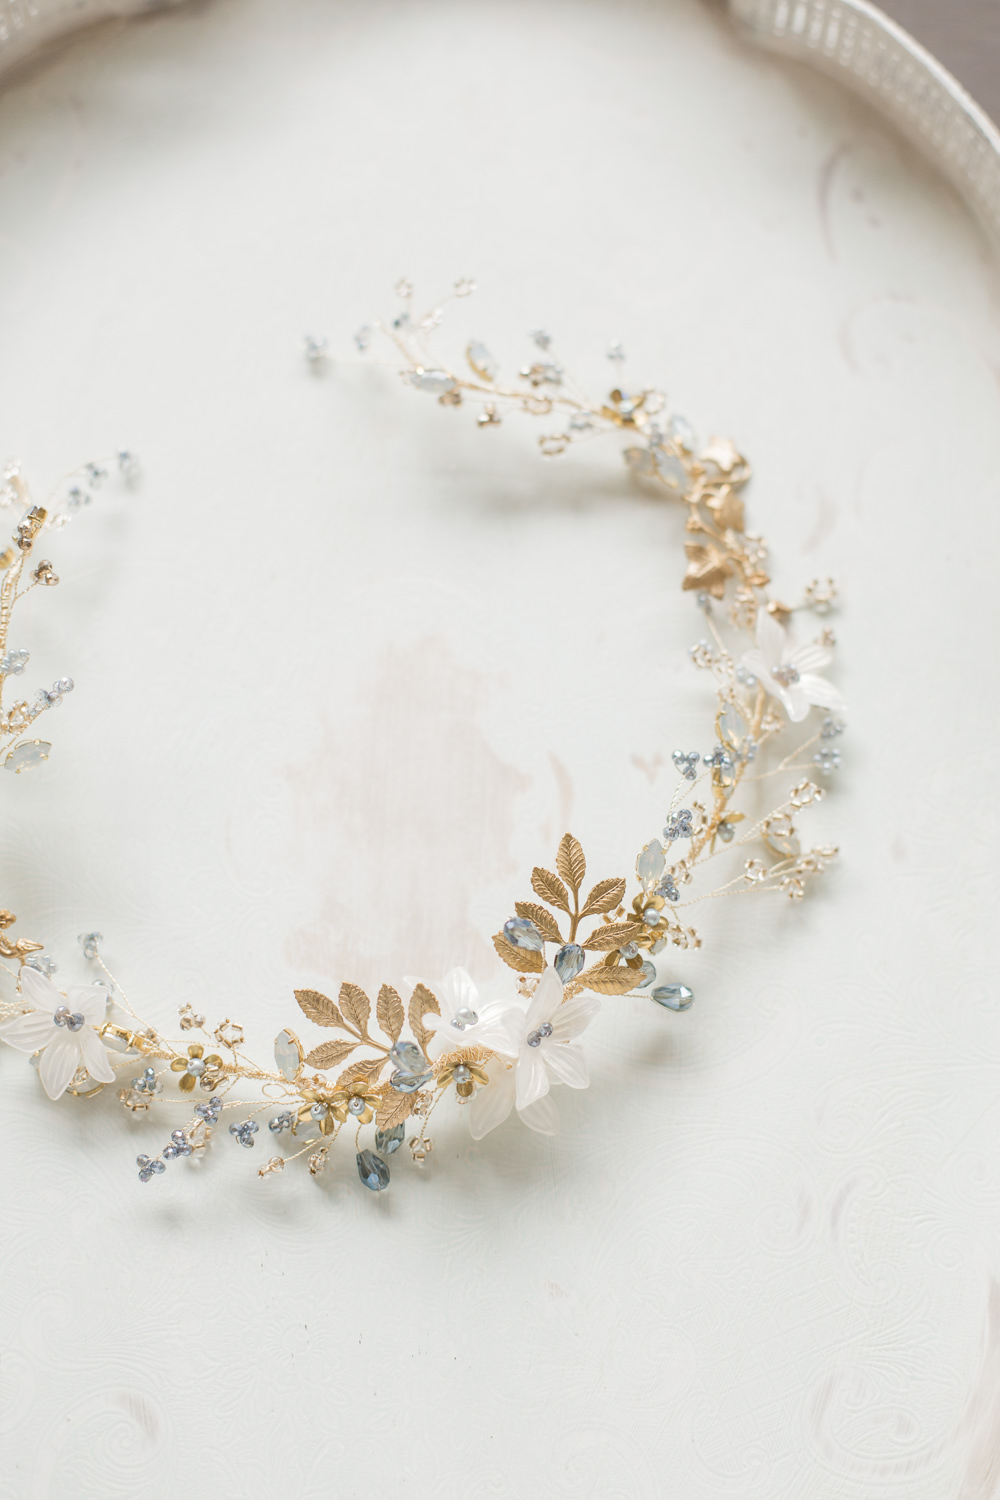 Bride Bridal Accessory Circlet Gold Leaf Hair Winter Blue Barn Wedding Ideas Joanna Briggs Photography